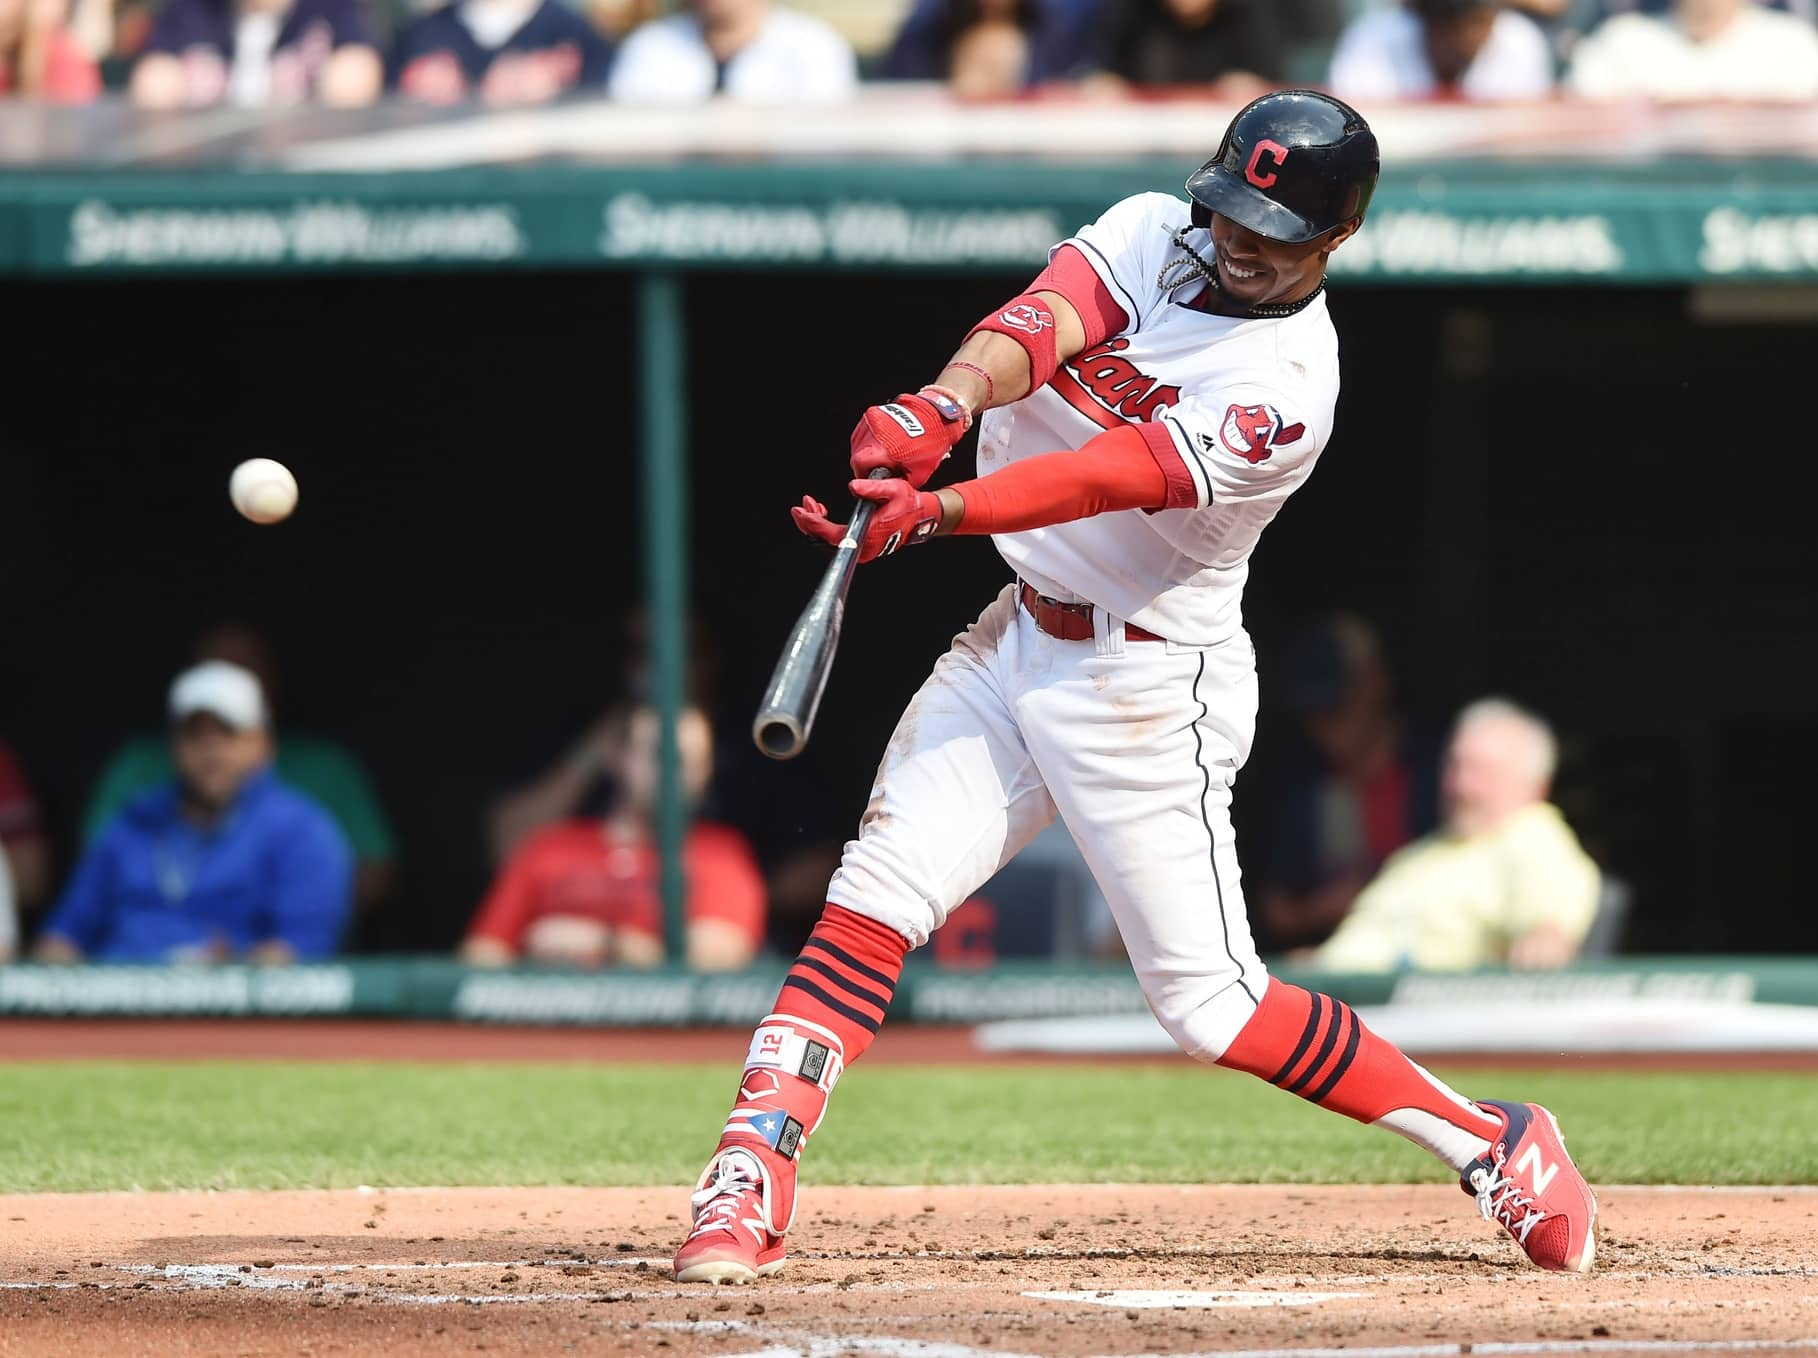 Apr 15, 2017; Cleveland, OH, USA; Cleveland Indians shortstop Francisco Lindor hits a single during the second inning against the Detroit Tigers at Progressive Field. Mandatory Credit: Ken Blaze-USA TODAY Sports